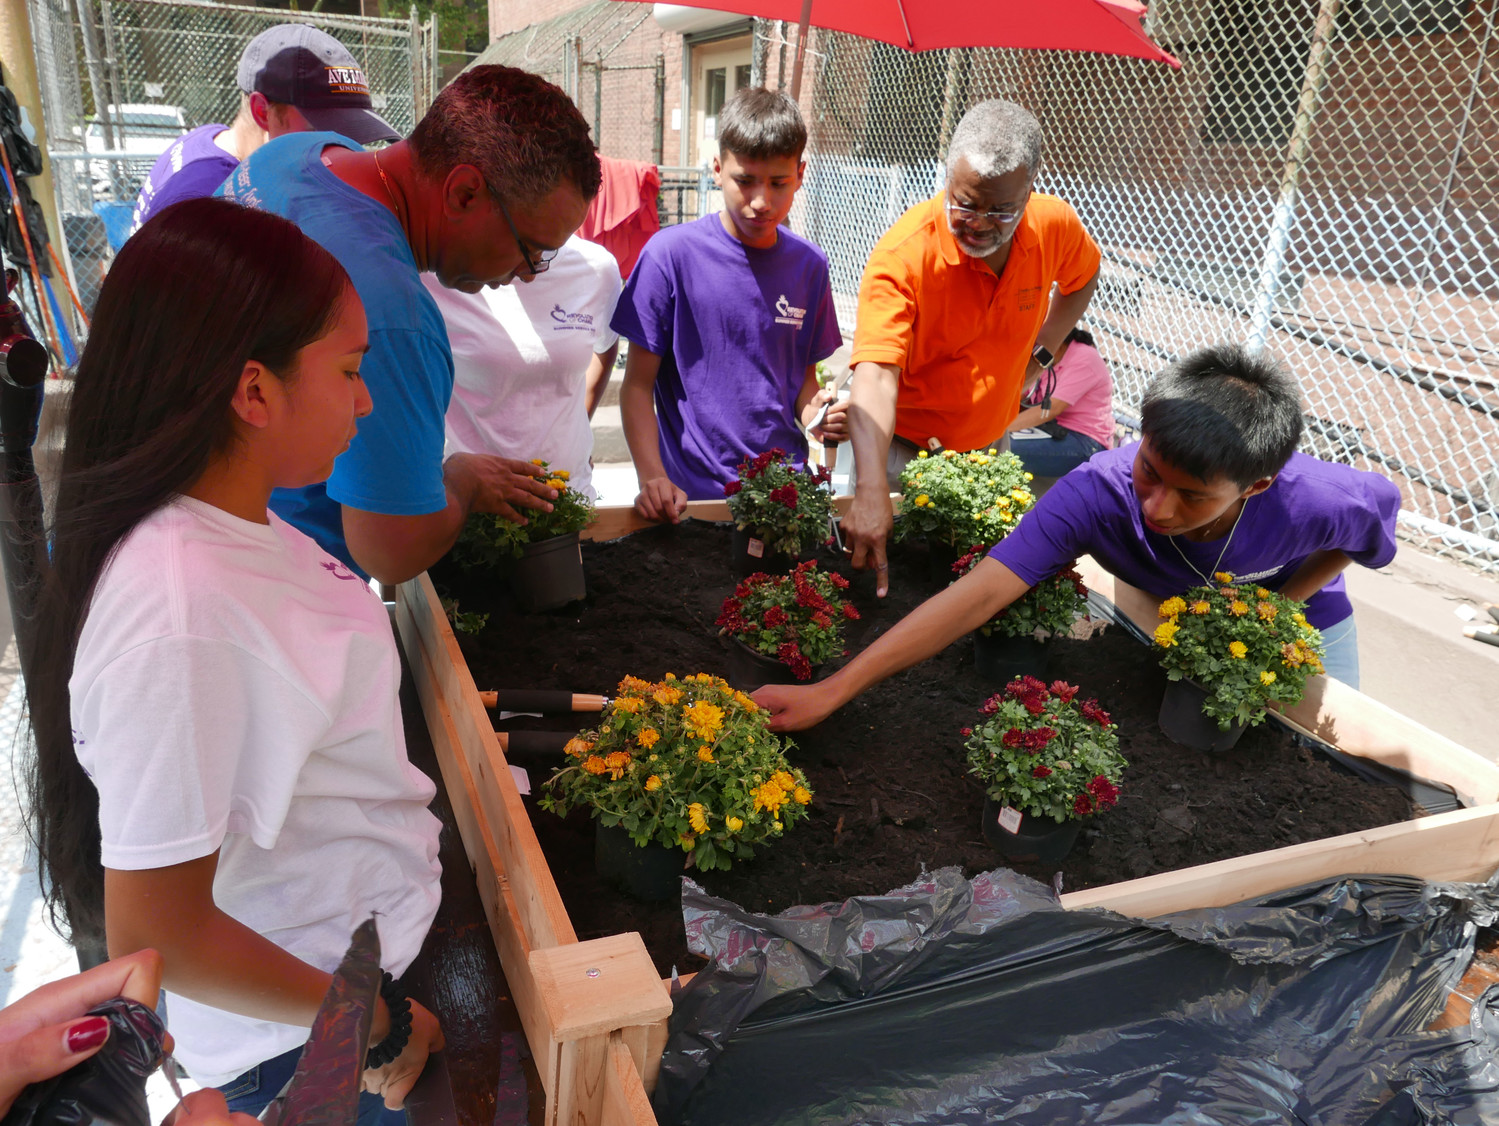 Revolution of Change service project workers plant a garden outside the Catholic Charities Kennedy Center in Harlem Aug. 8. They are, from left, Adriana Mora; Richard Espinal, associate director for parish and community engagement for the Department of Social and Community Development of archdiocesan Catholic Charities; Daniel Genn, associate director of the archdiocesan Office of Youth Ministry (partially obscured, in blue cap); Angel Martinez; Deacon Rodney Beckford, director of the Catholic Charities Kennedy Center; and Miguel Juarez.